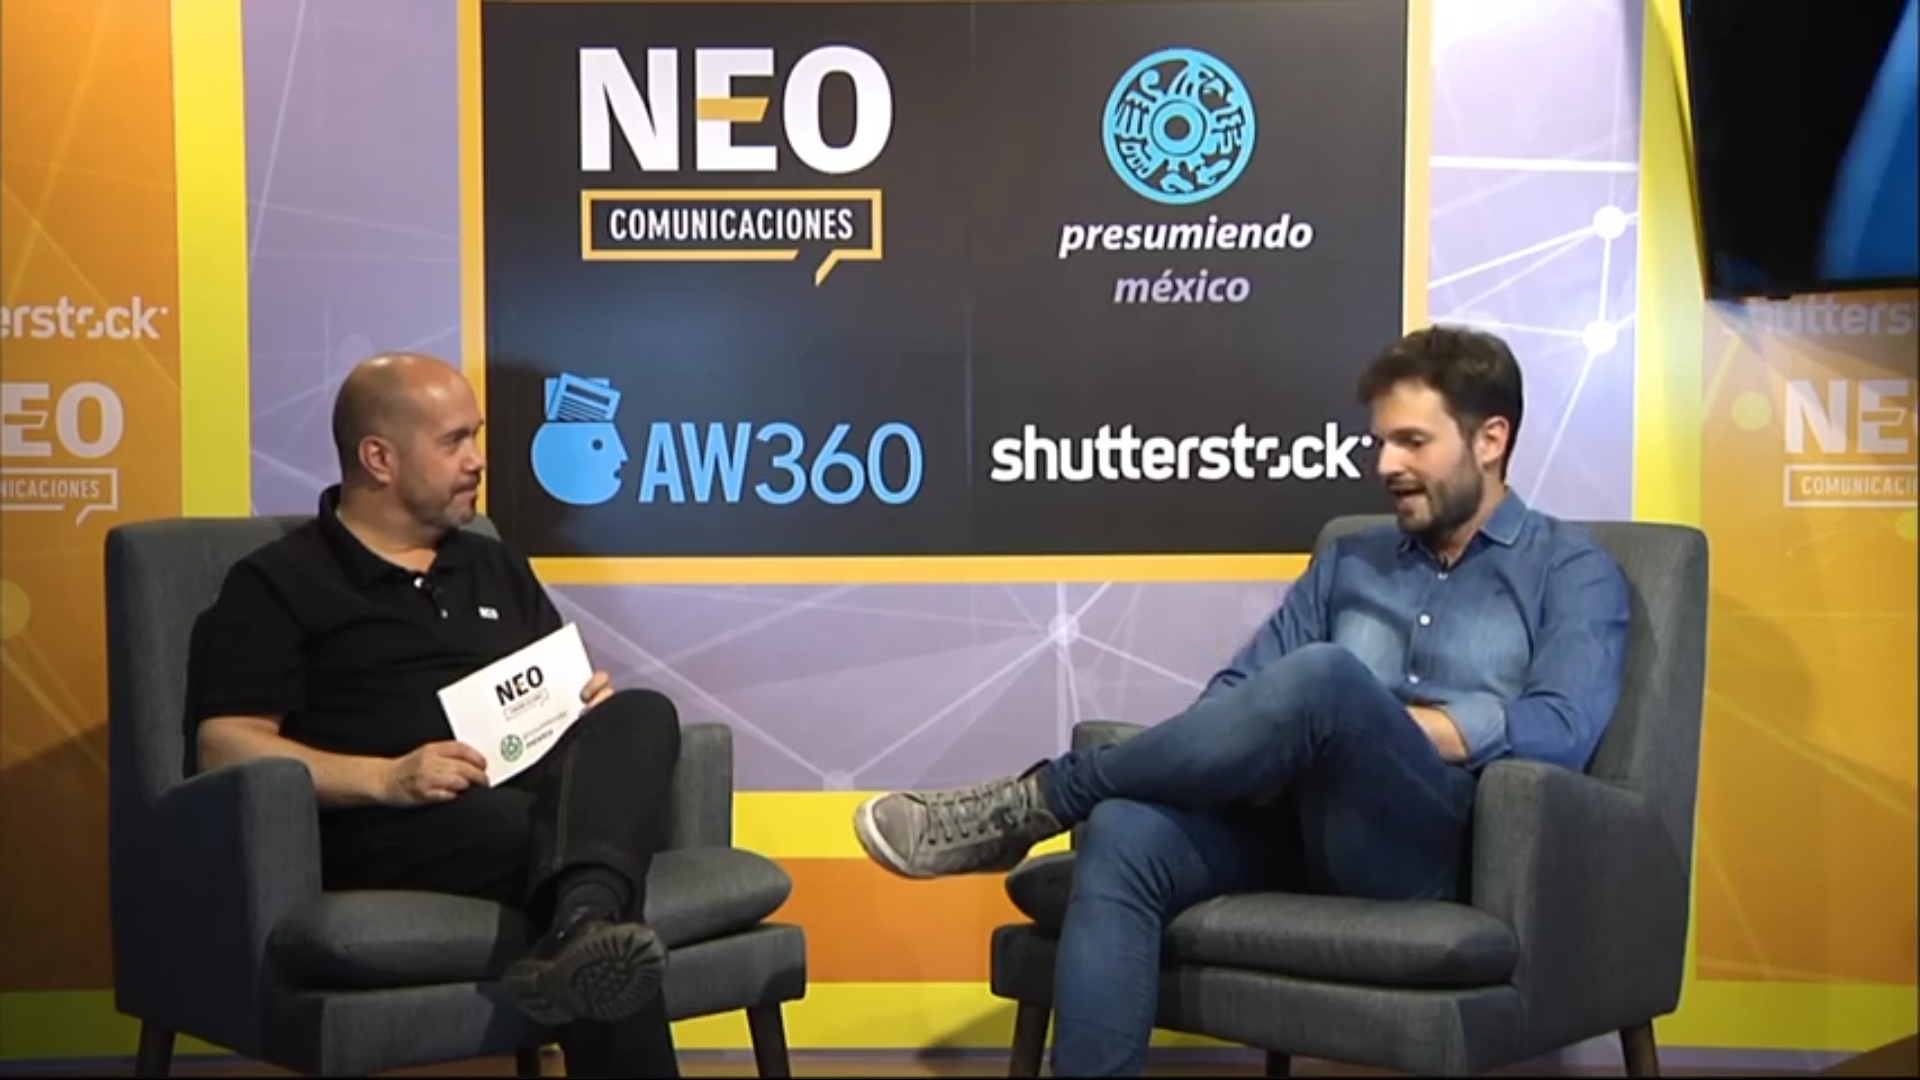 Daniel Czaplinsky en entrevista con NEO Marketing Talk en Advertising Week 2020